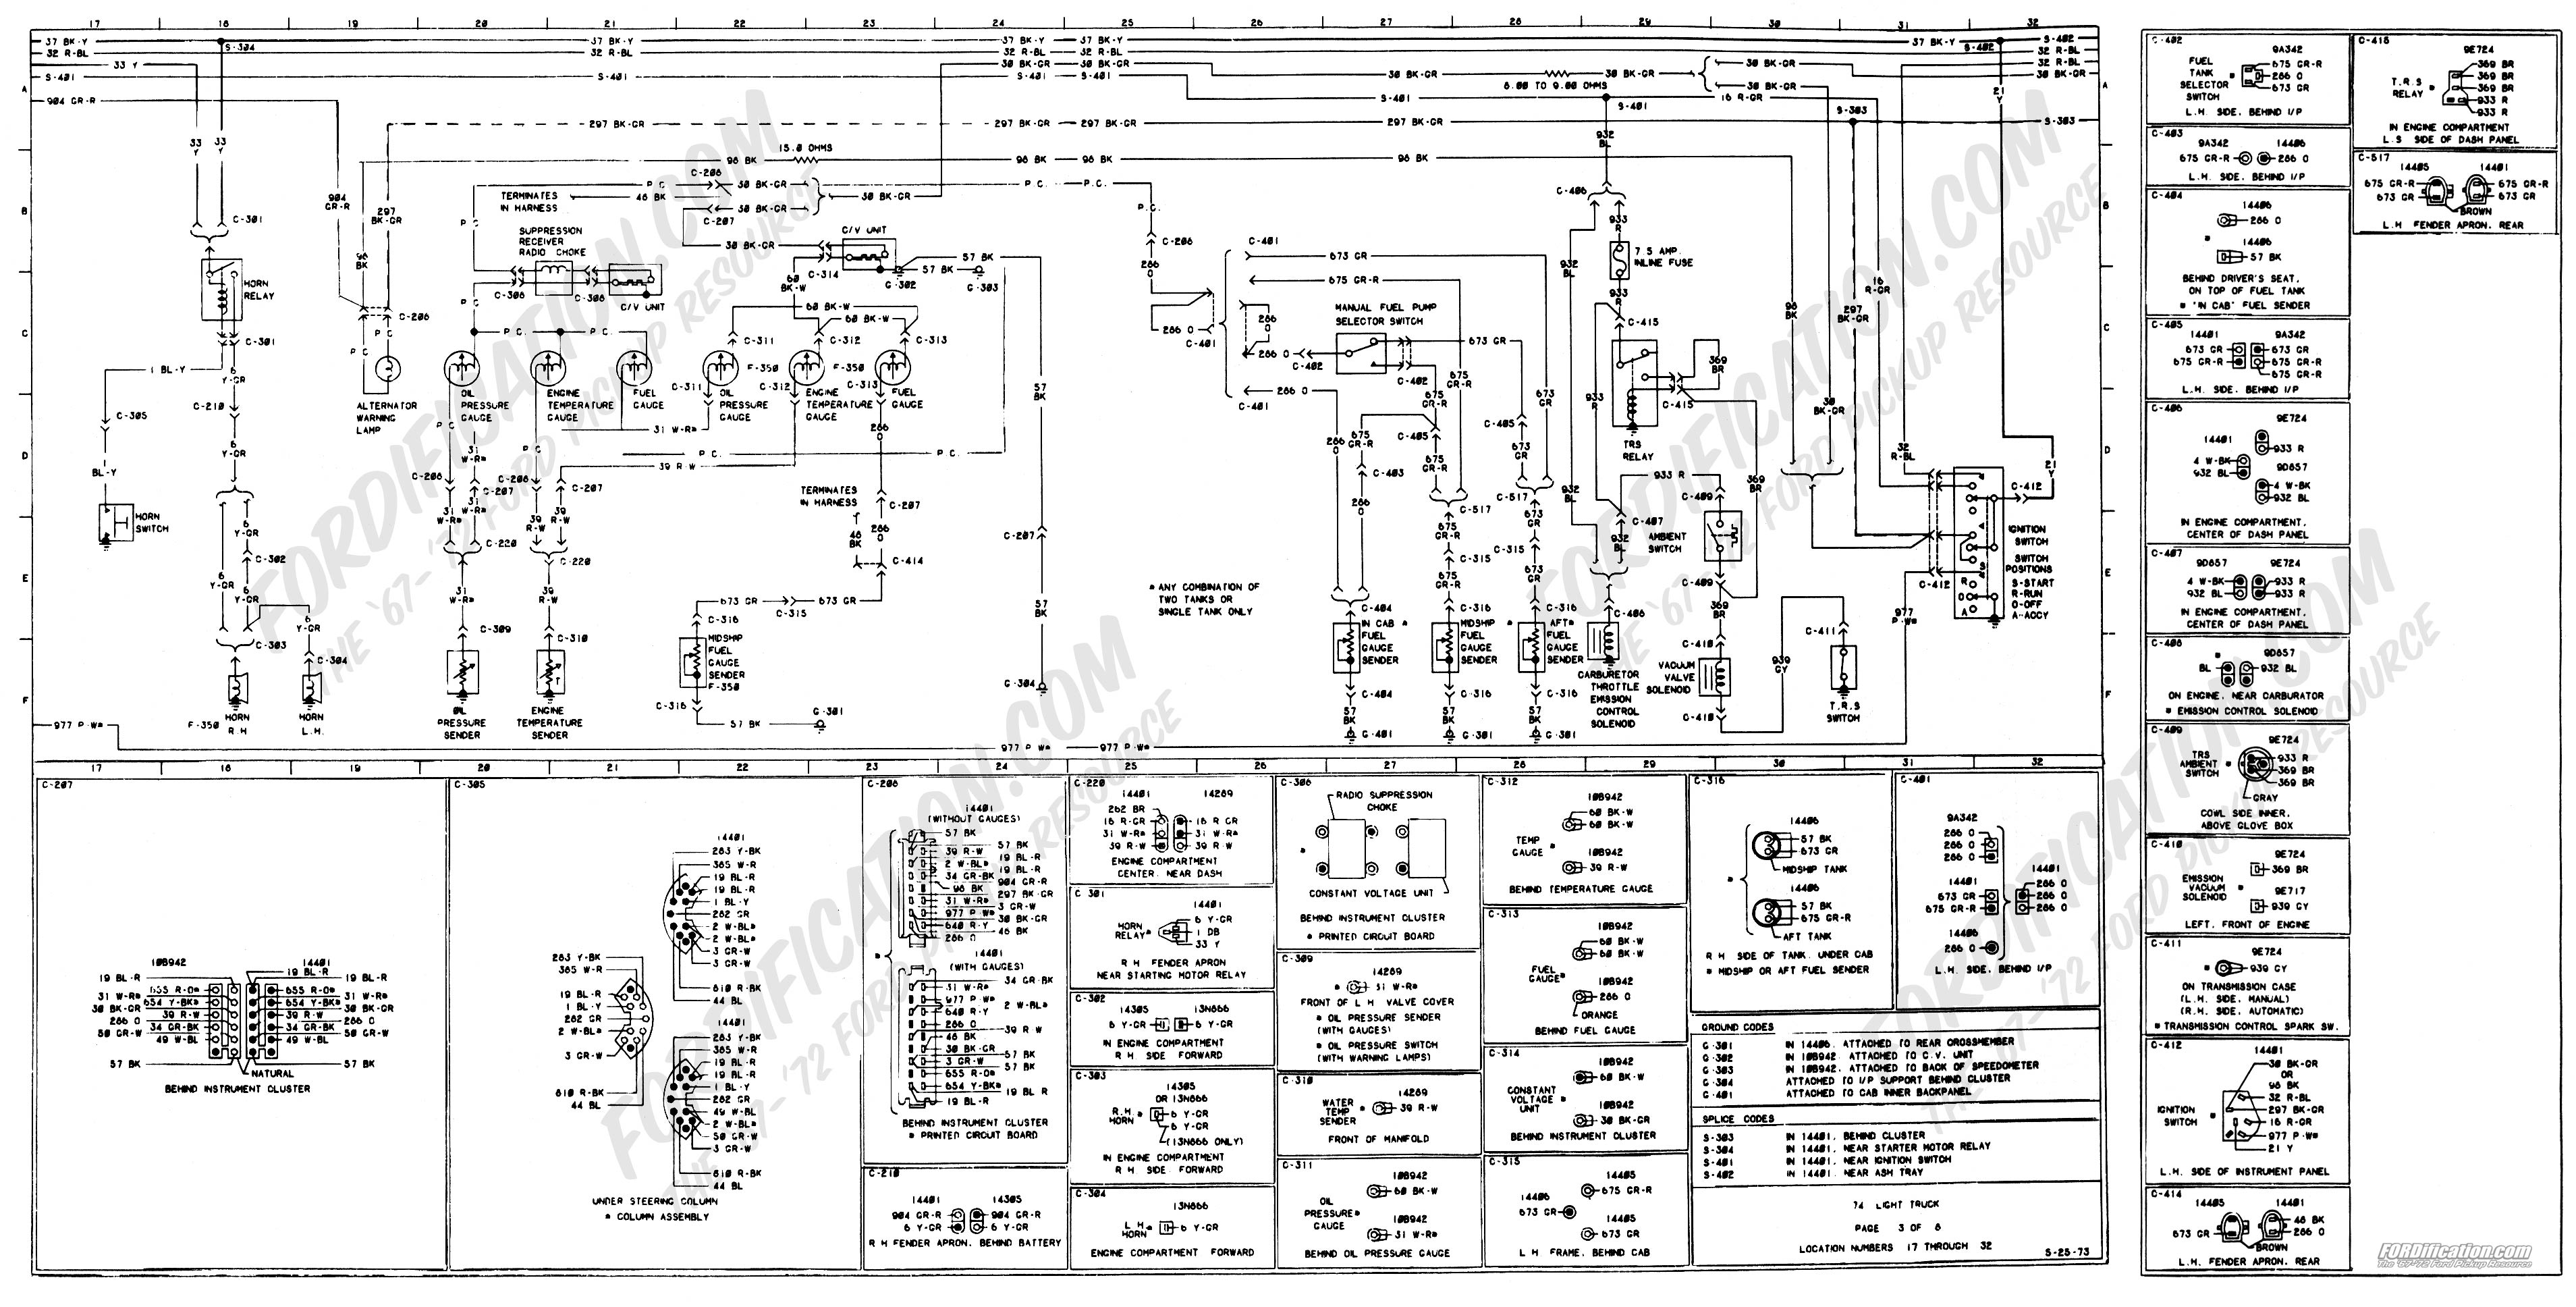 wiring_74master_3of8 1973 1979 ford truck wiring diagrams & schematics fordification net 1995 ford l9000 wiring schematics at gsmx.co